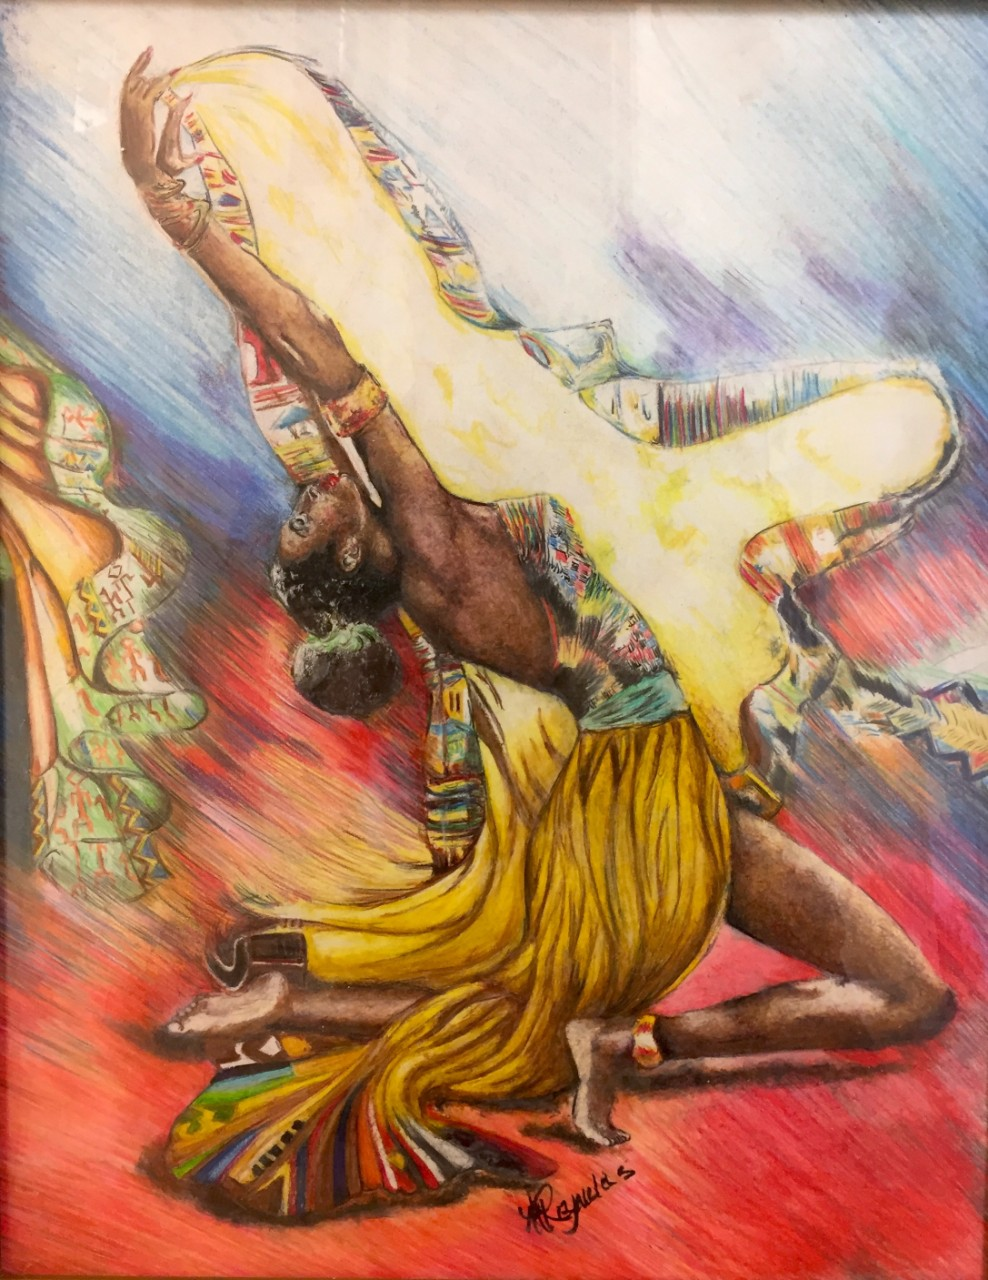 "Michael Reynolds – African Dancer, 20"" x 16"", colored pencil (n.d.)"